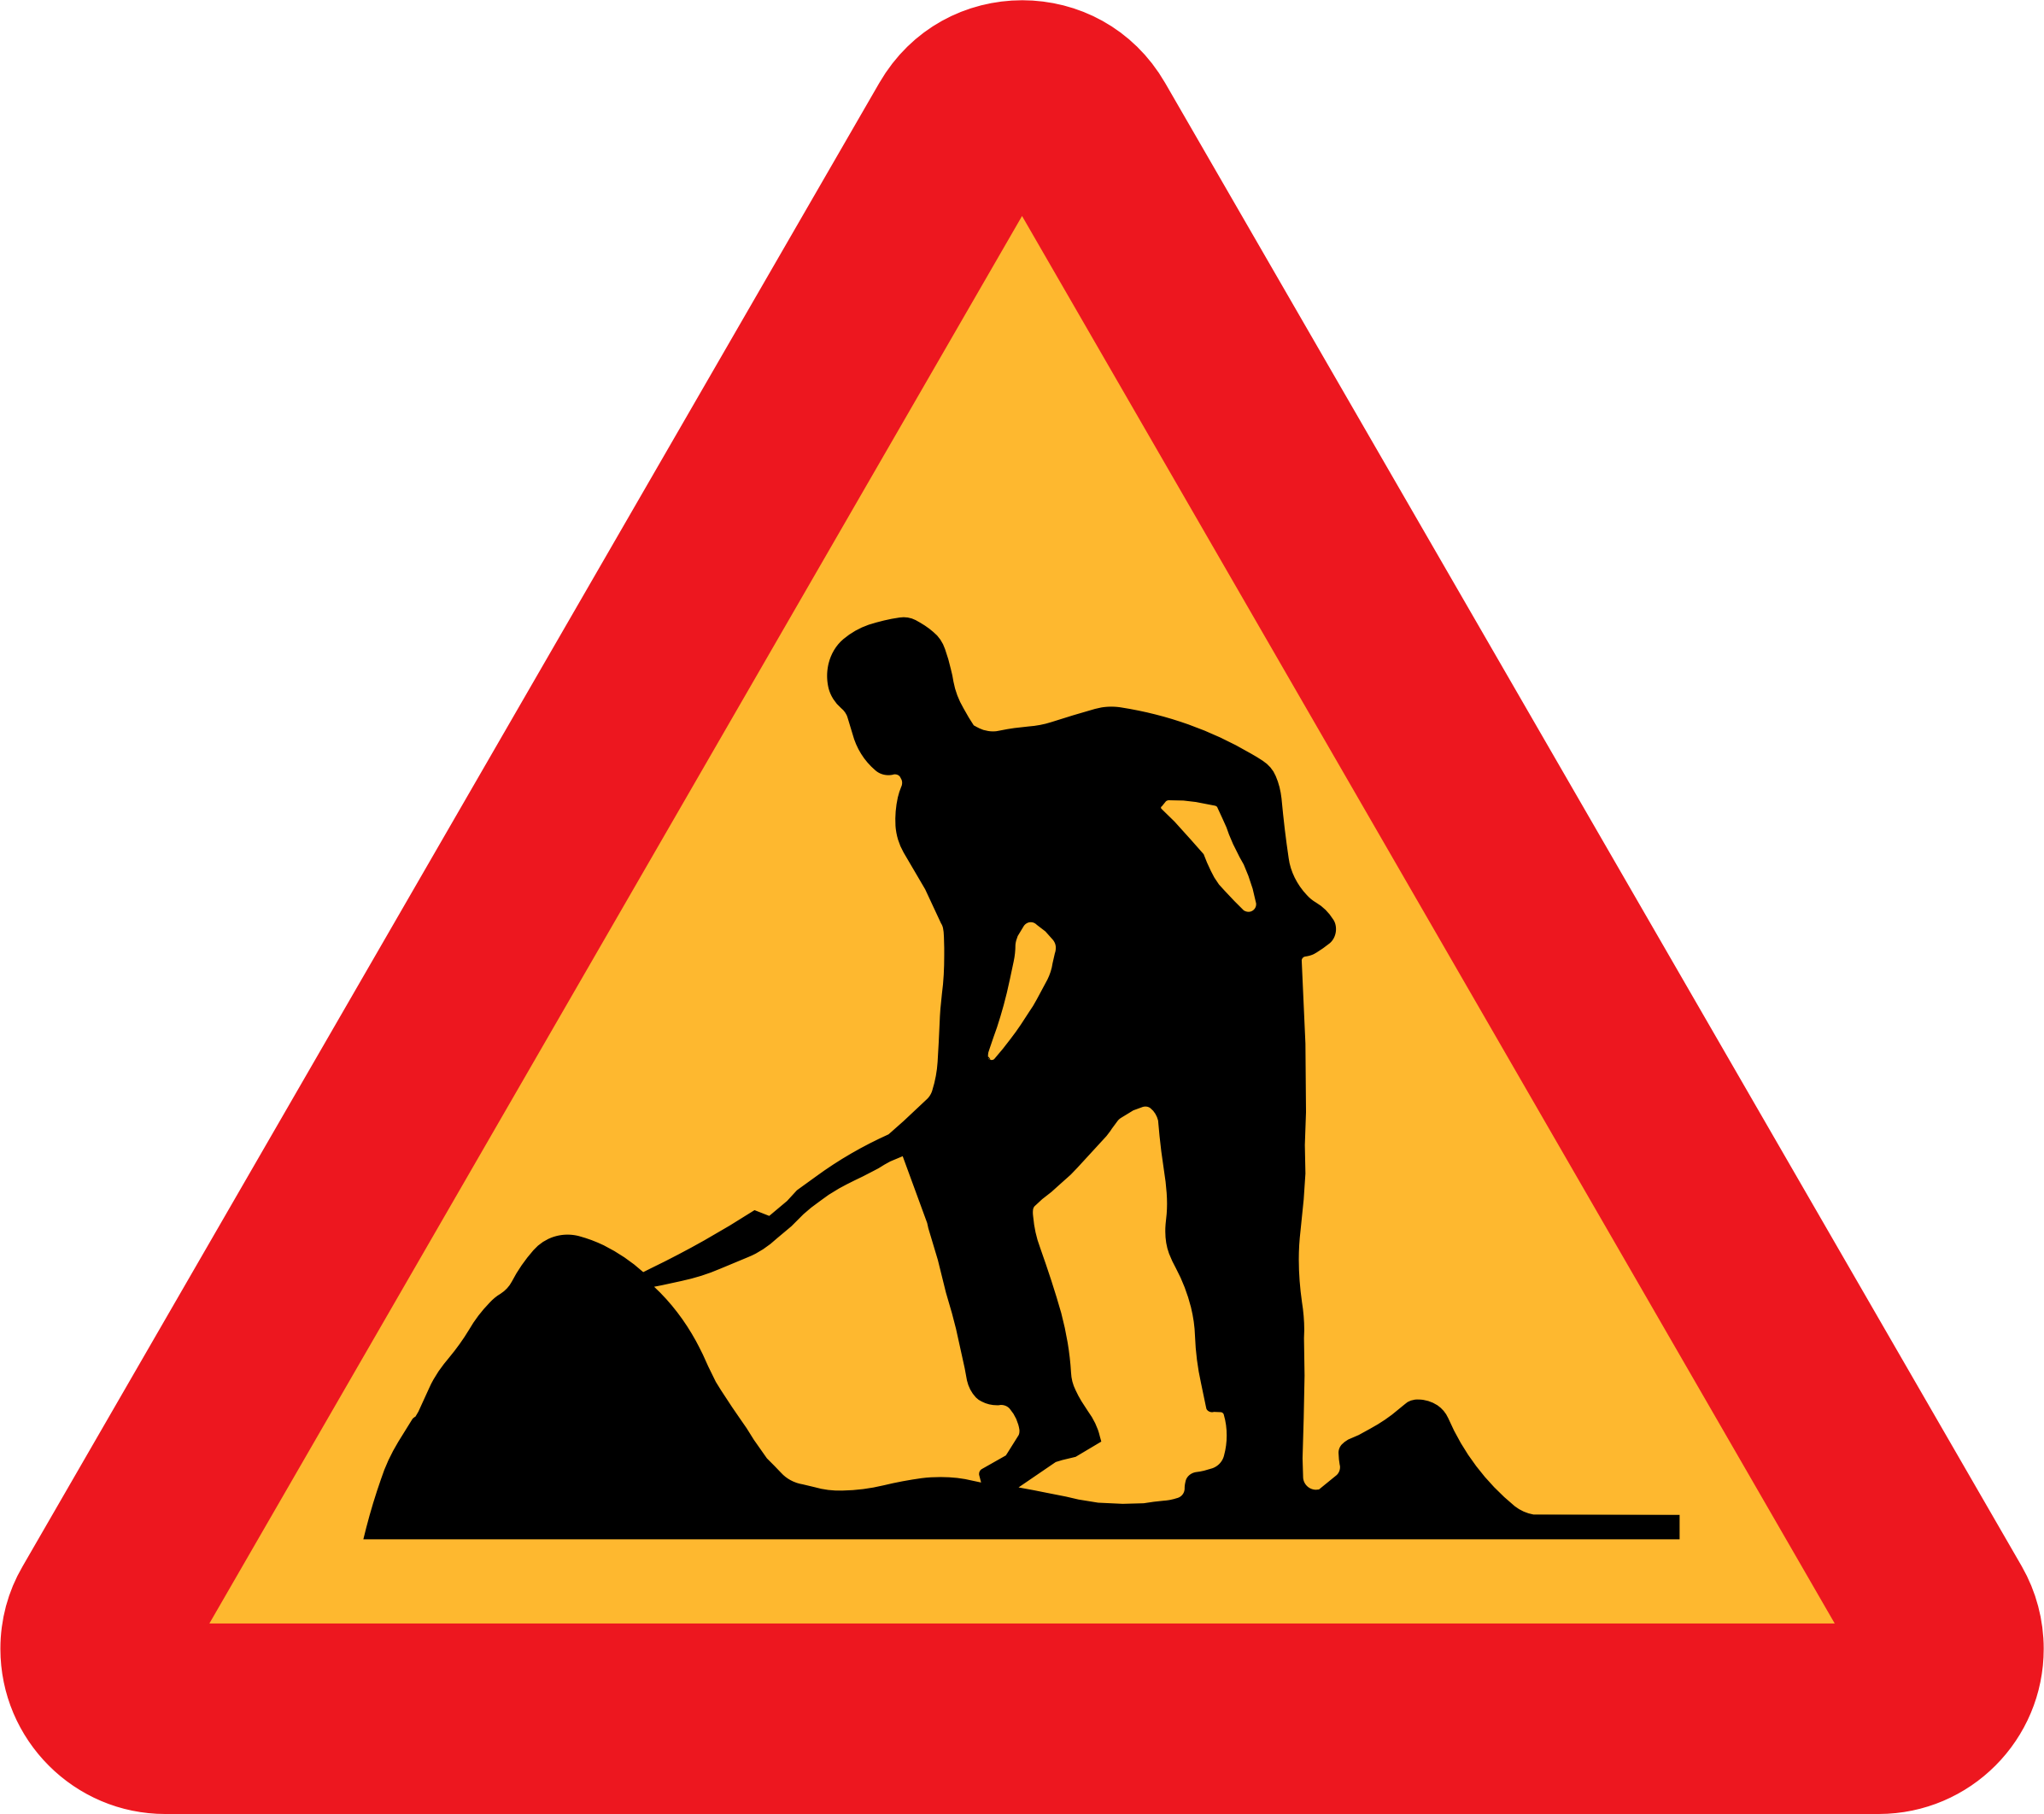 Workman Ahead Roadsign by ryanlerch